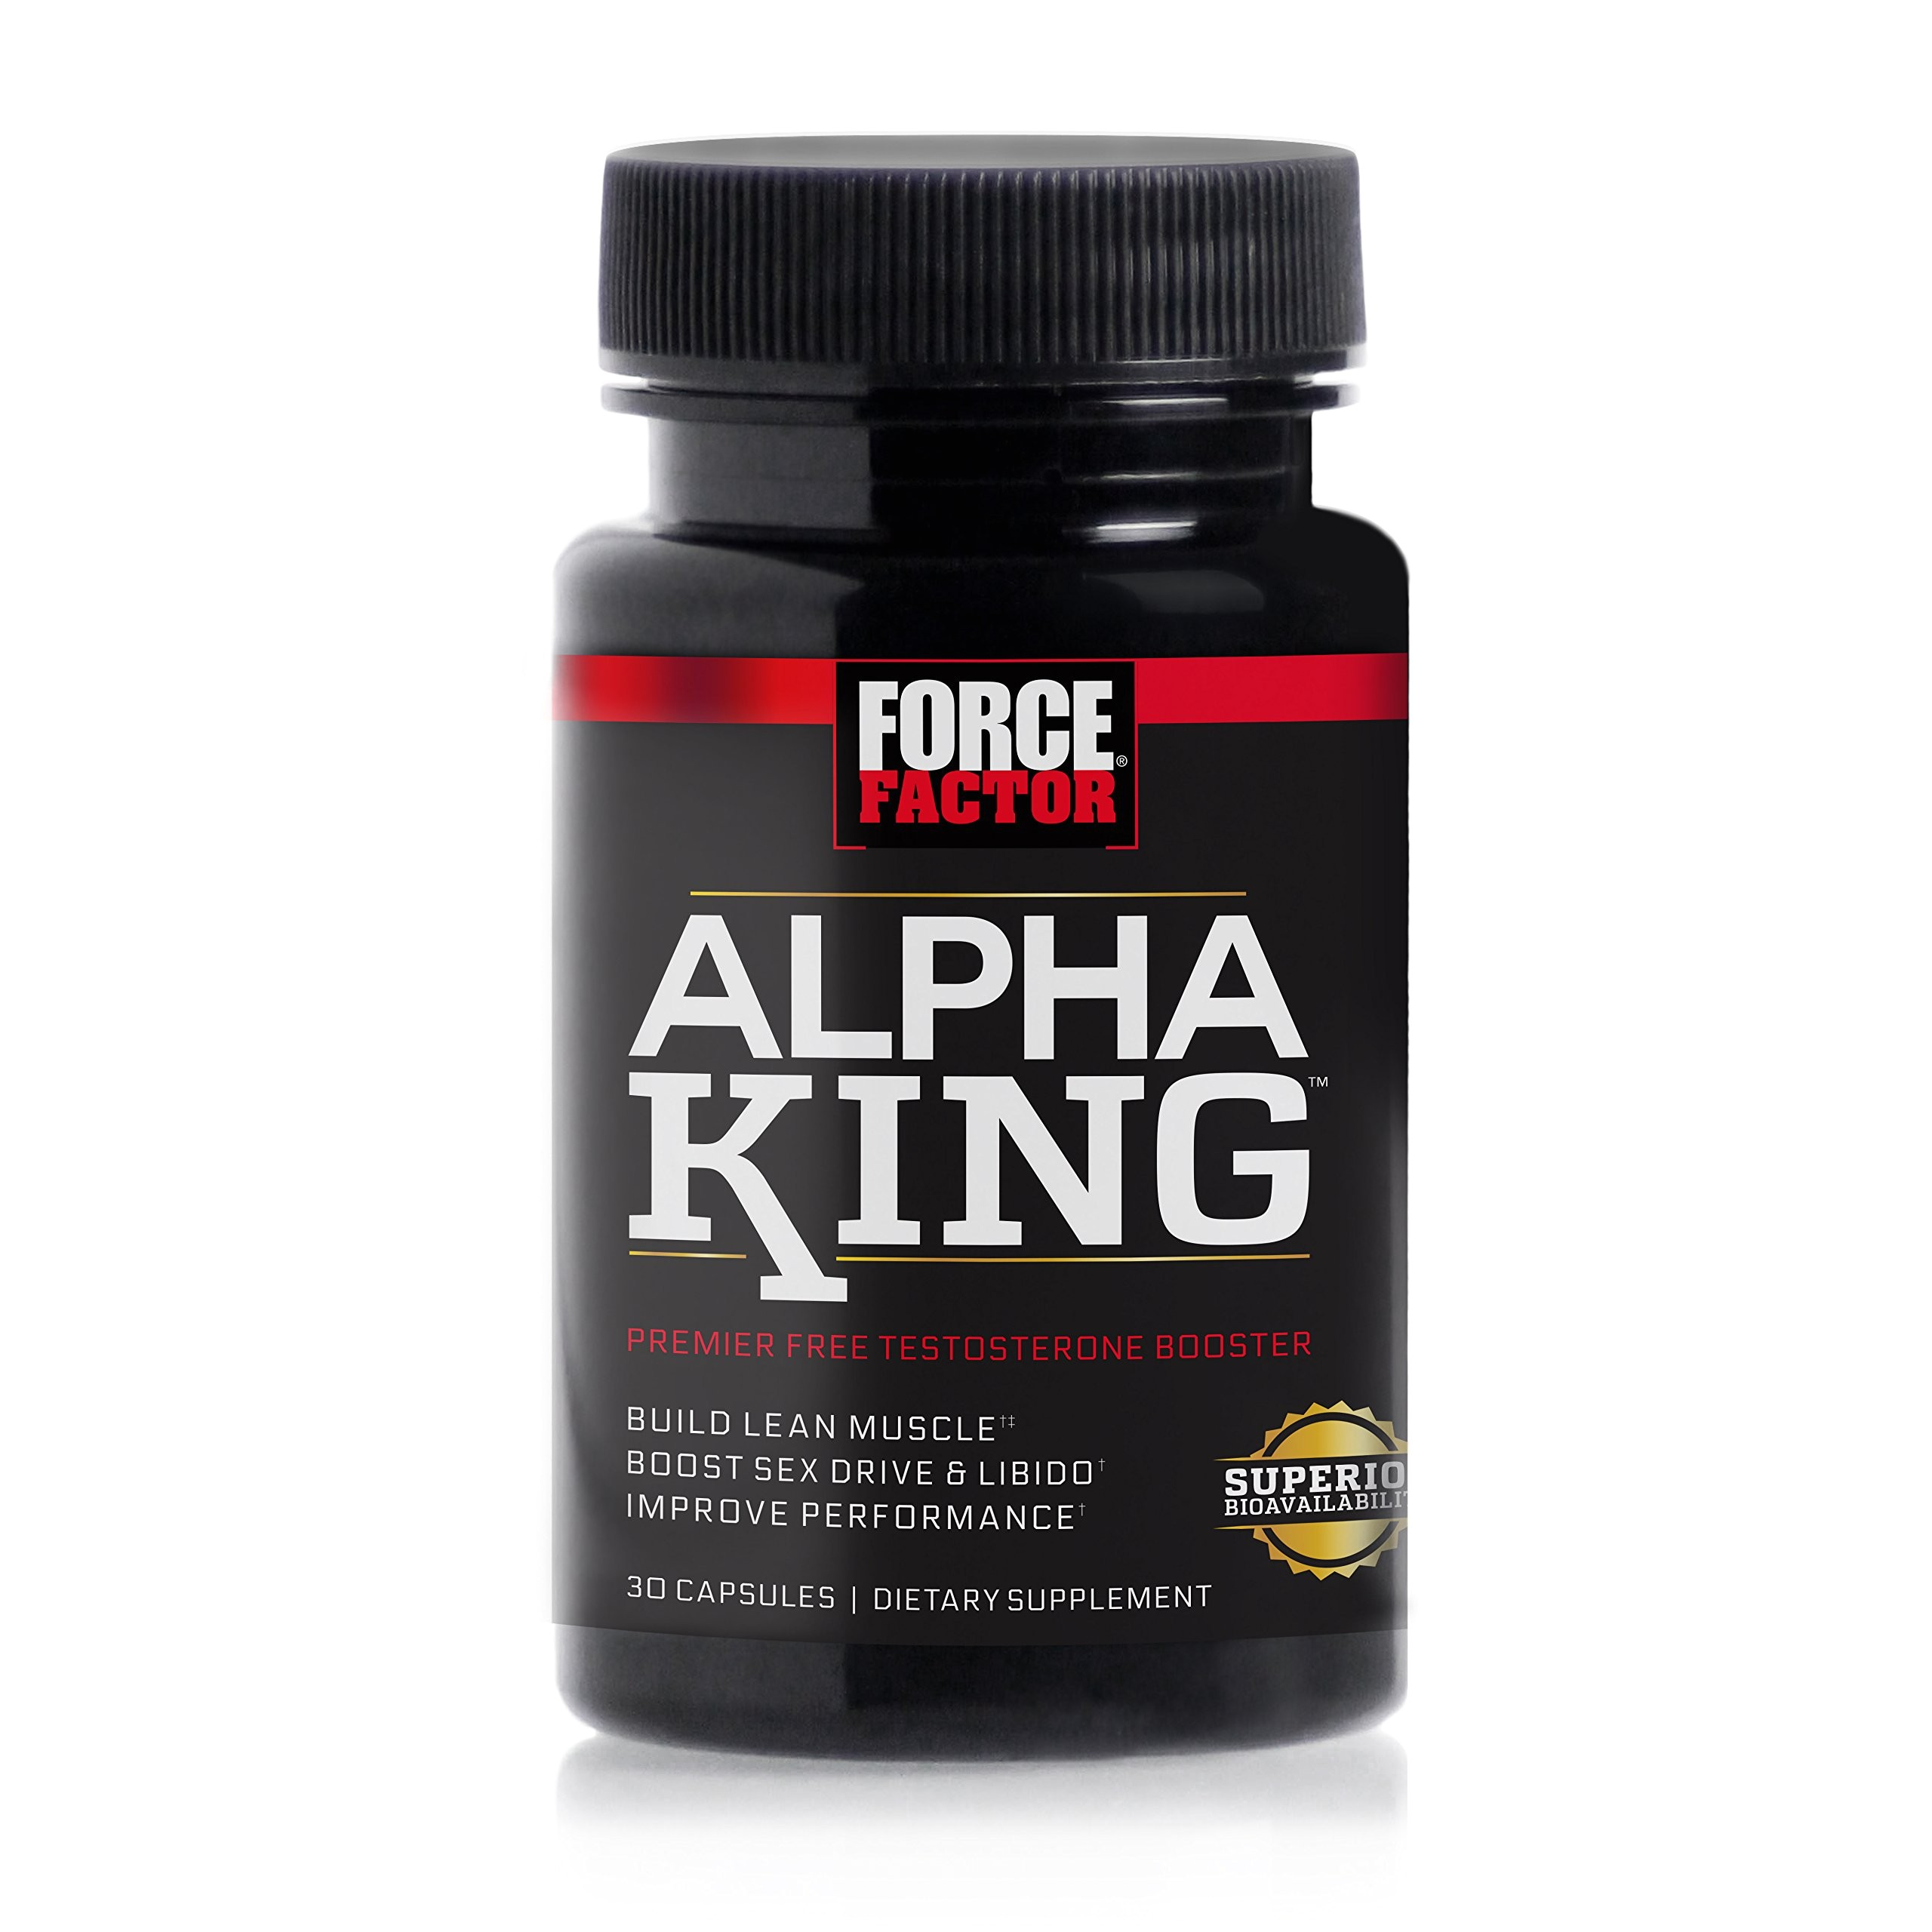 force factor alpha king testosterone booster increase passion and drive build lean muscle